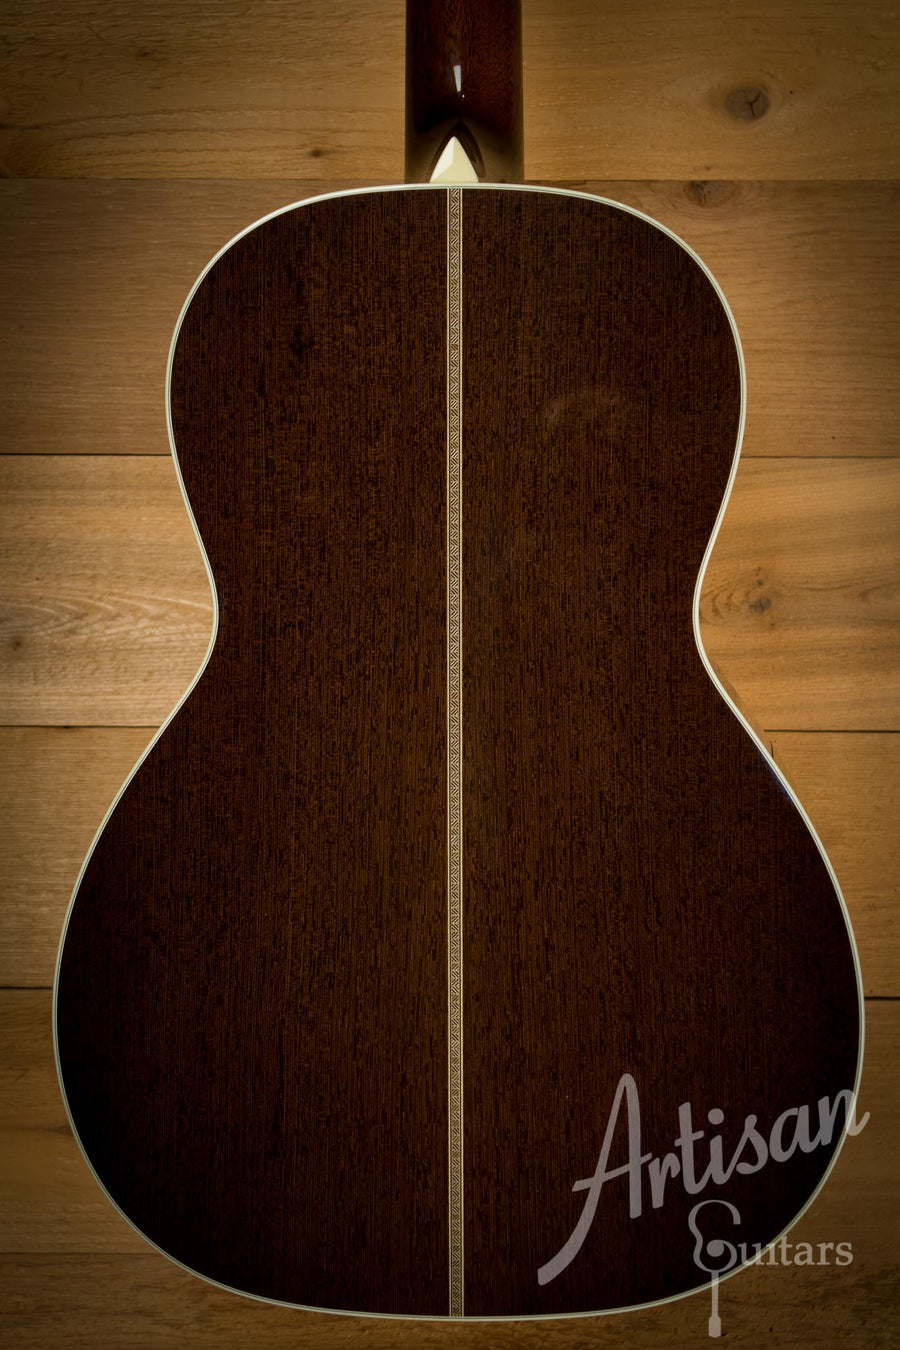 PreOwned 2014 Collings 02 12 fret German and Wenge Guitar ID-10228 - Artisan Guitars